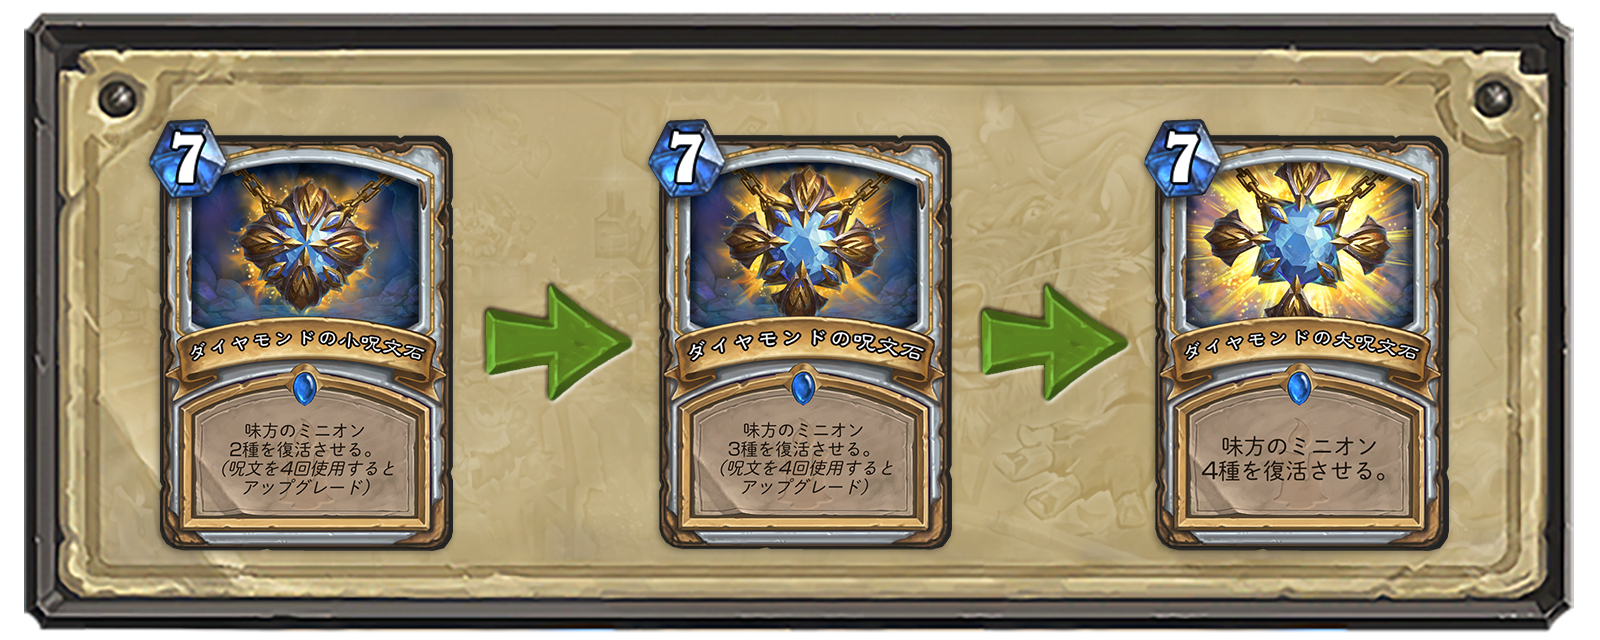 jaJP_Cards_HS_Diamond_LW_1000x690.png